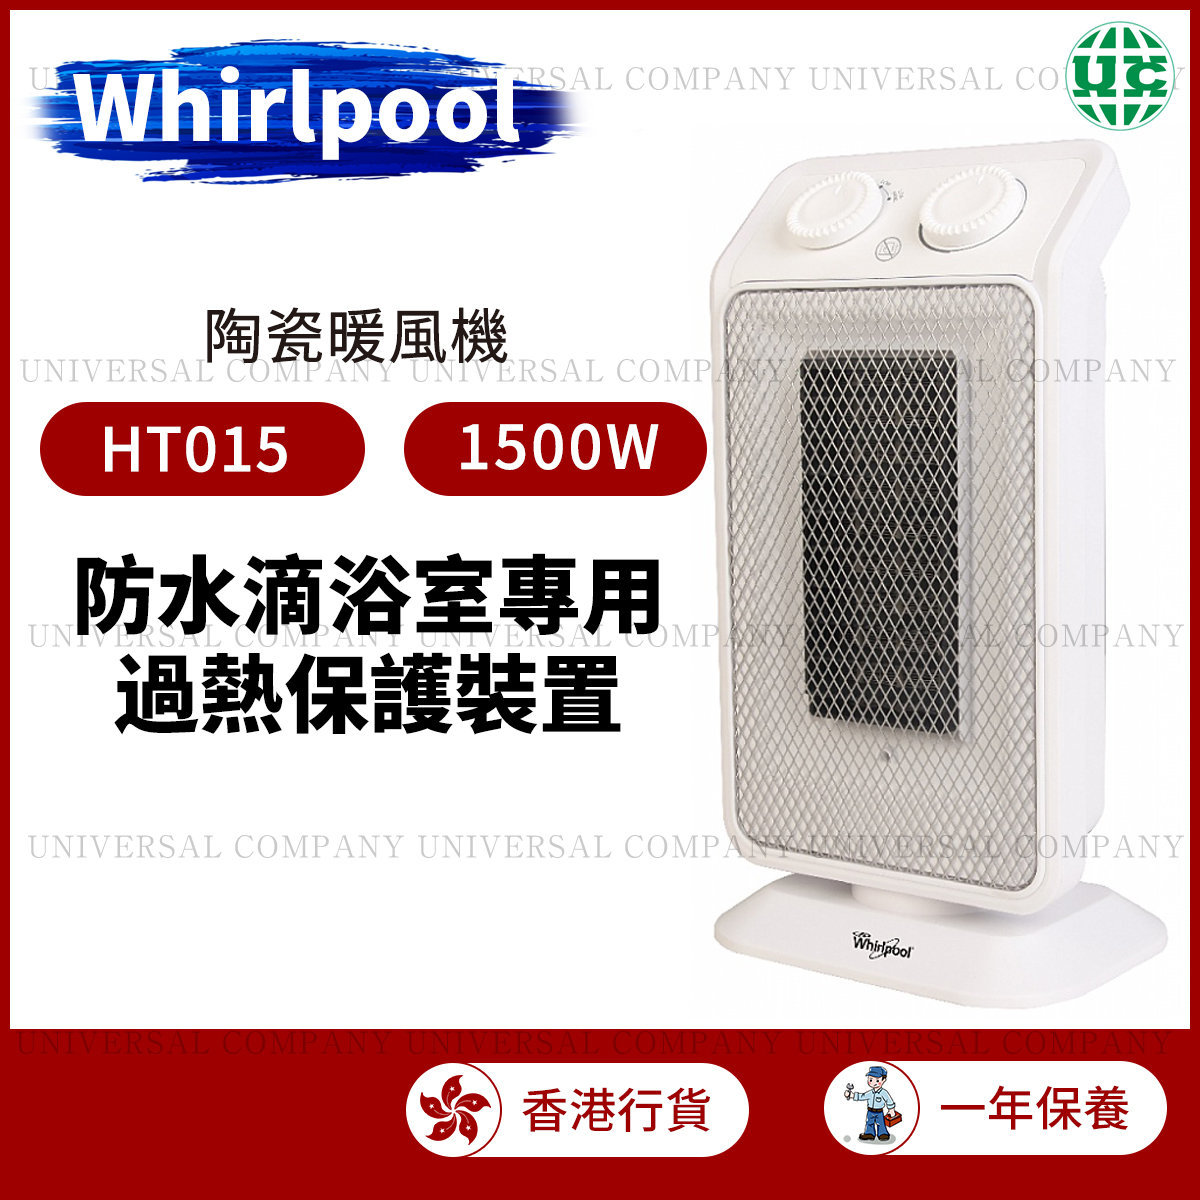 HT015 1500W ceramic heater (for bathroom only) (Hong Kong licensed)